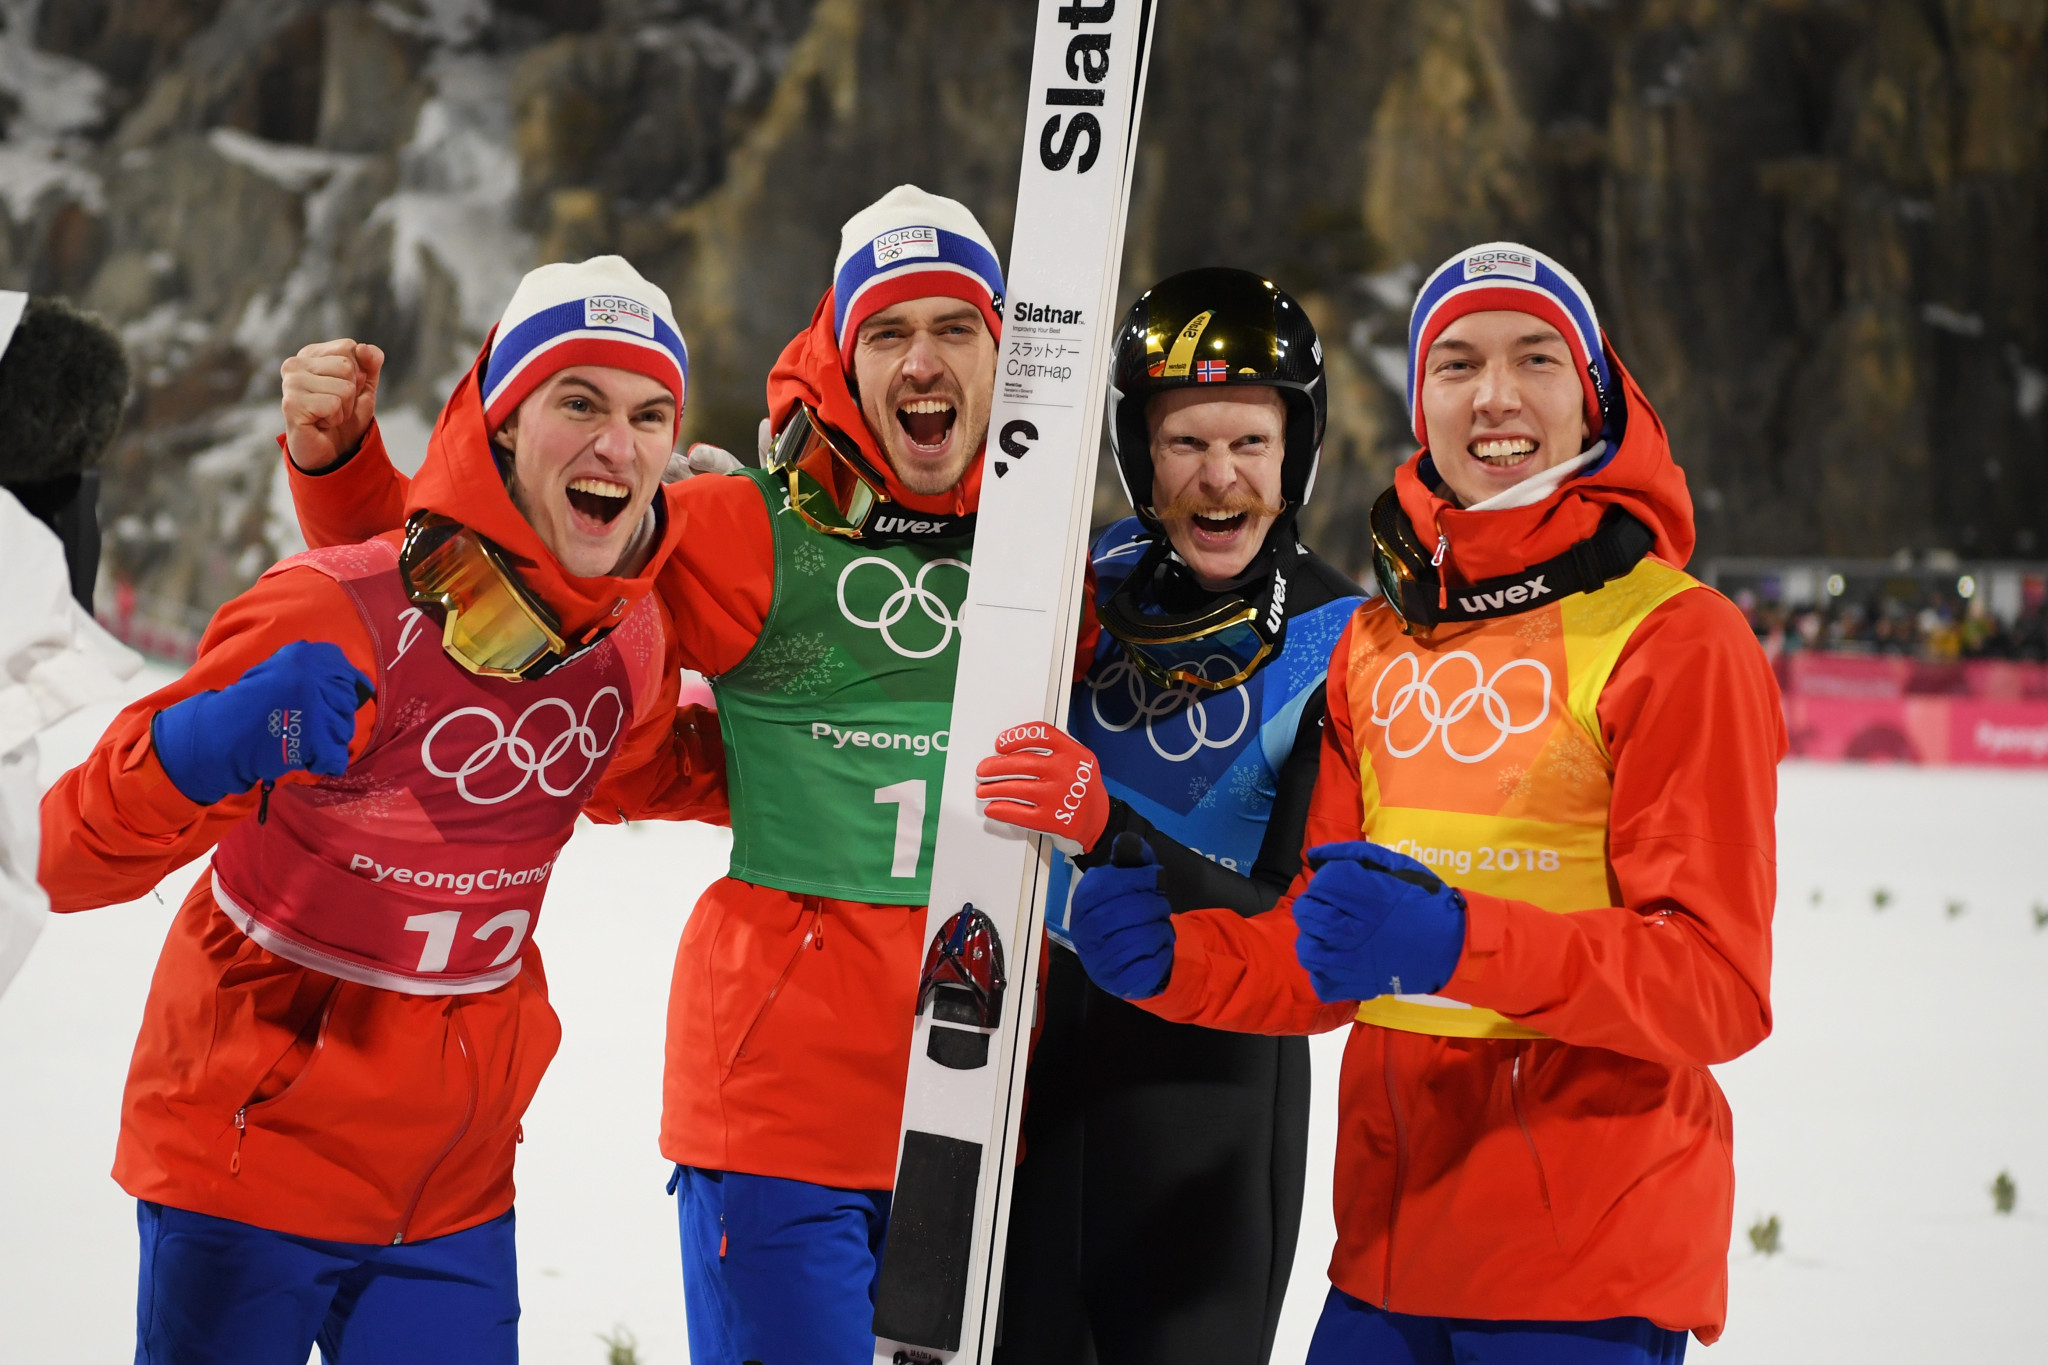 Norway win men's team event gold on last day of Pyeongchang 2018 ski jumping competition